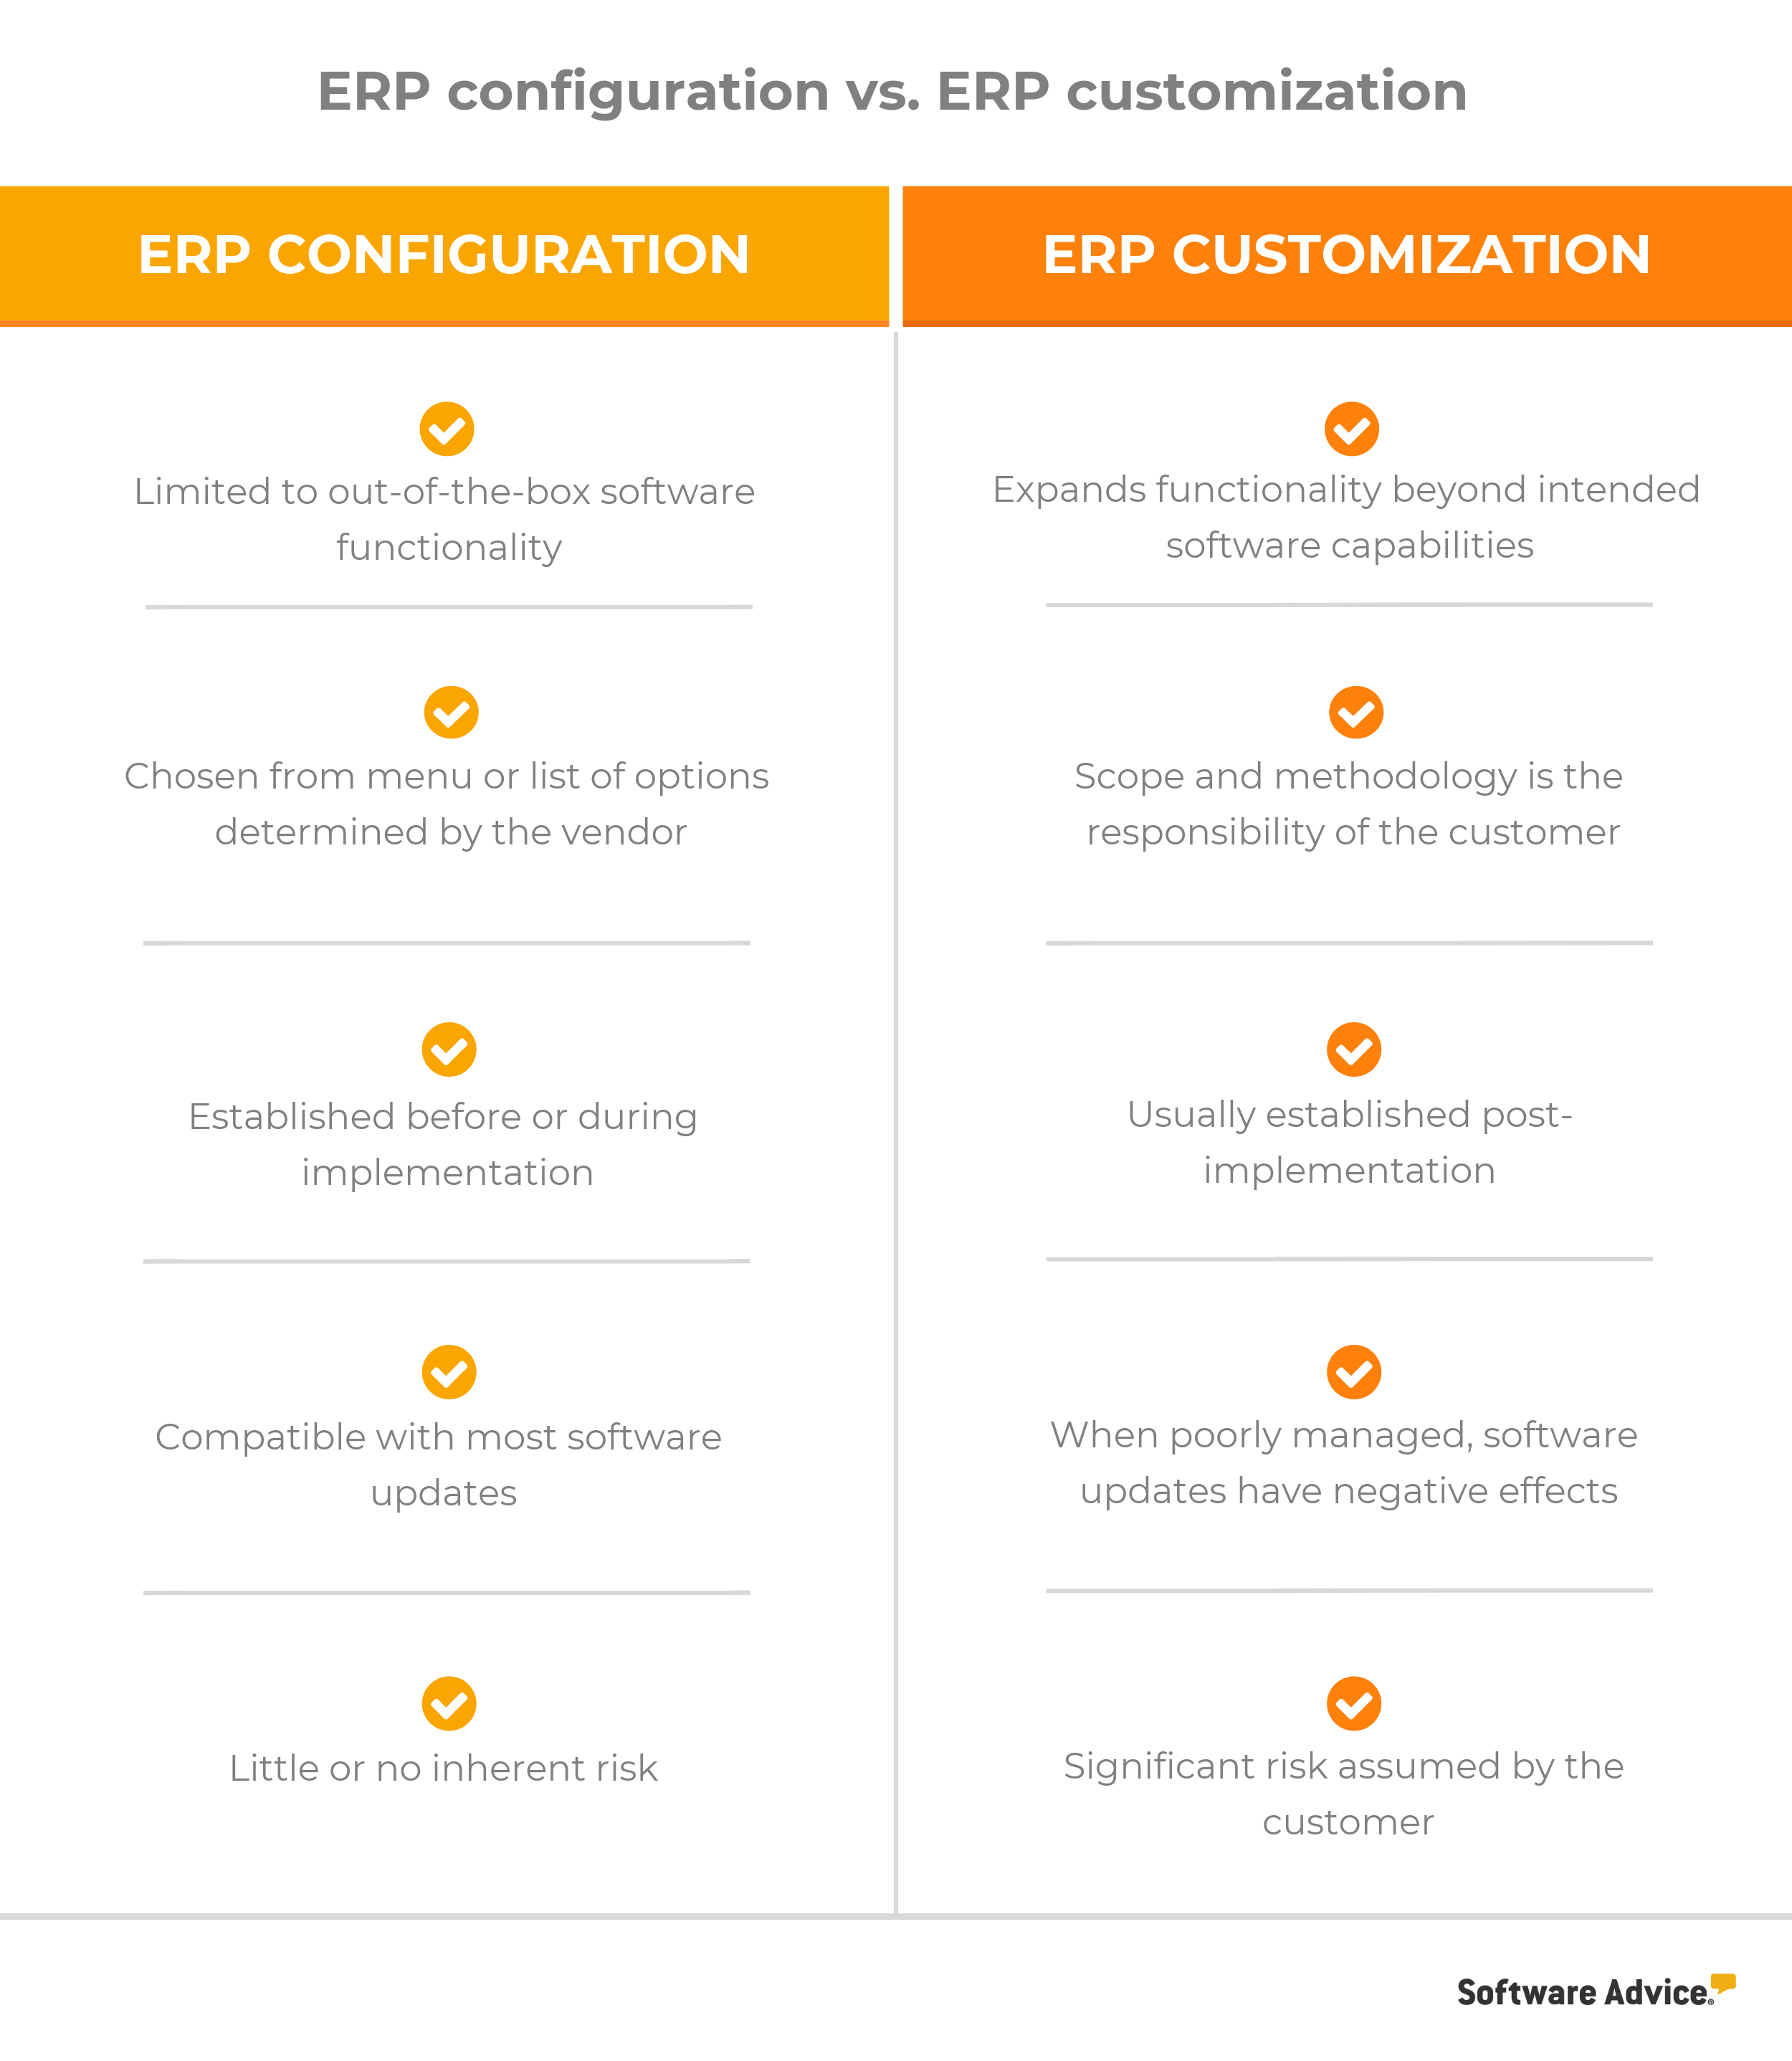 erp configuration vs erp customization